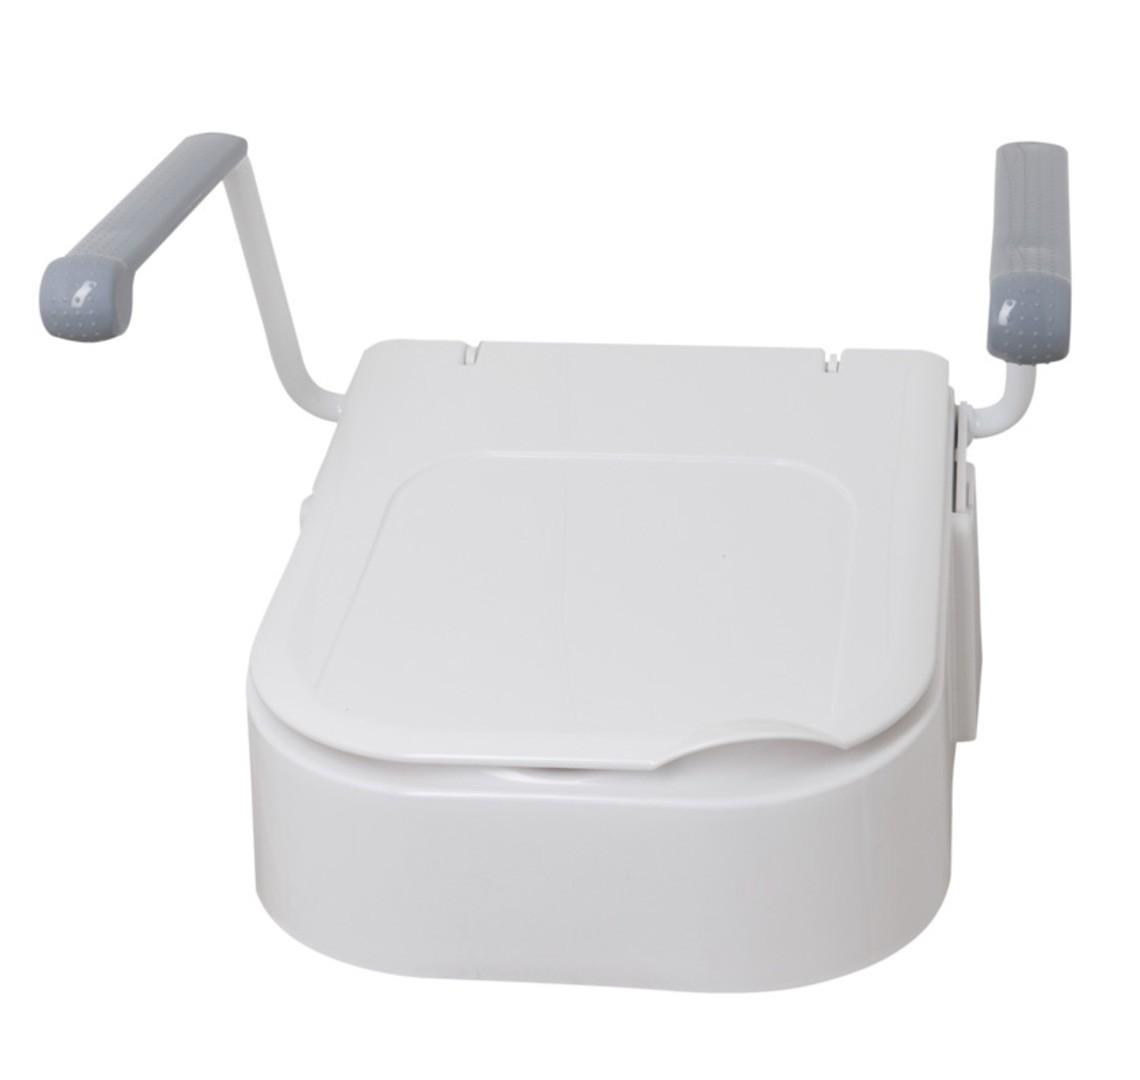 Raised Toilet Seat with Arms